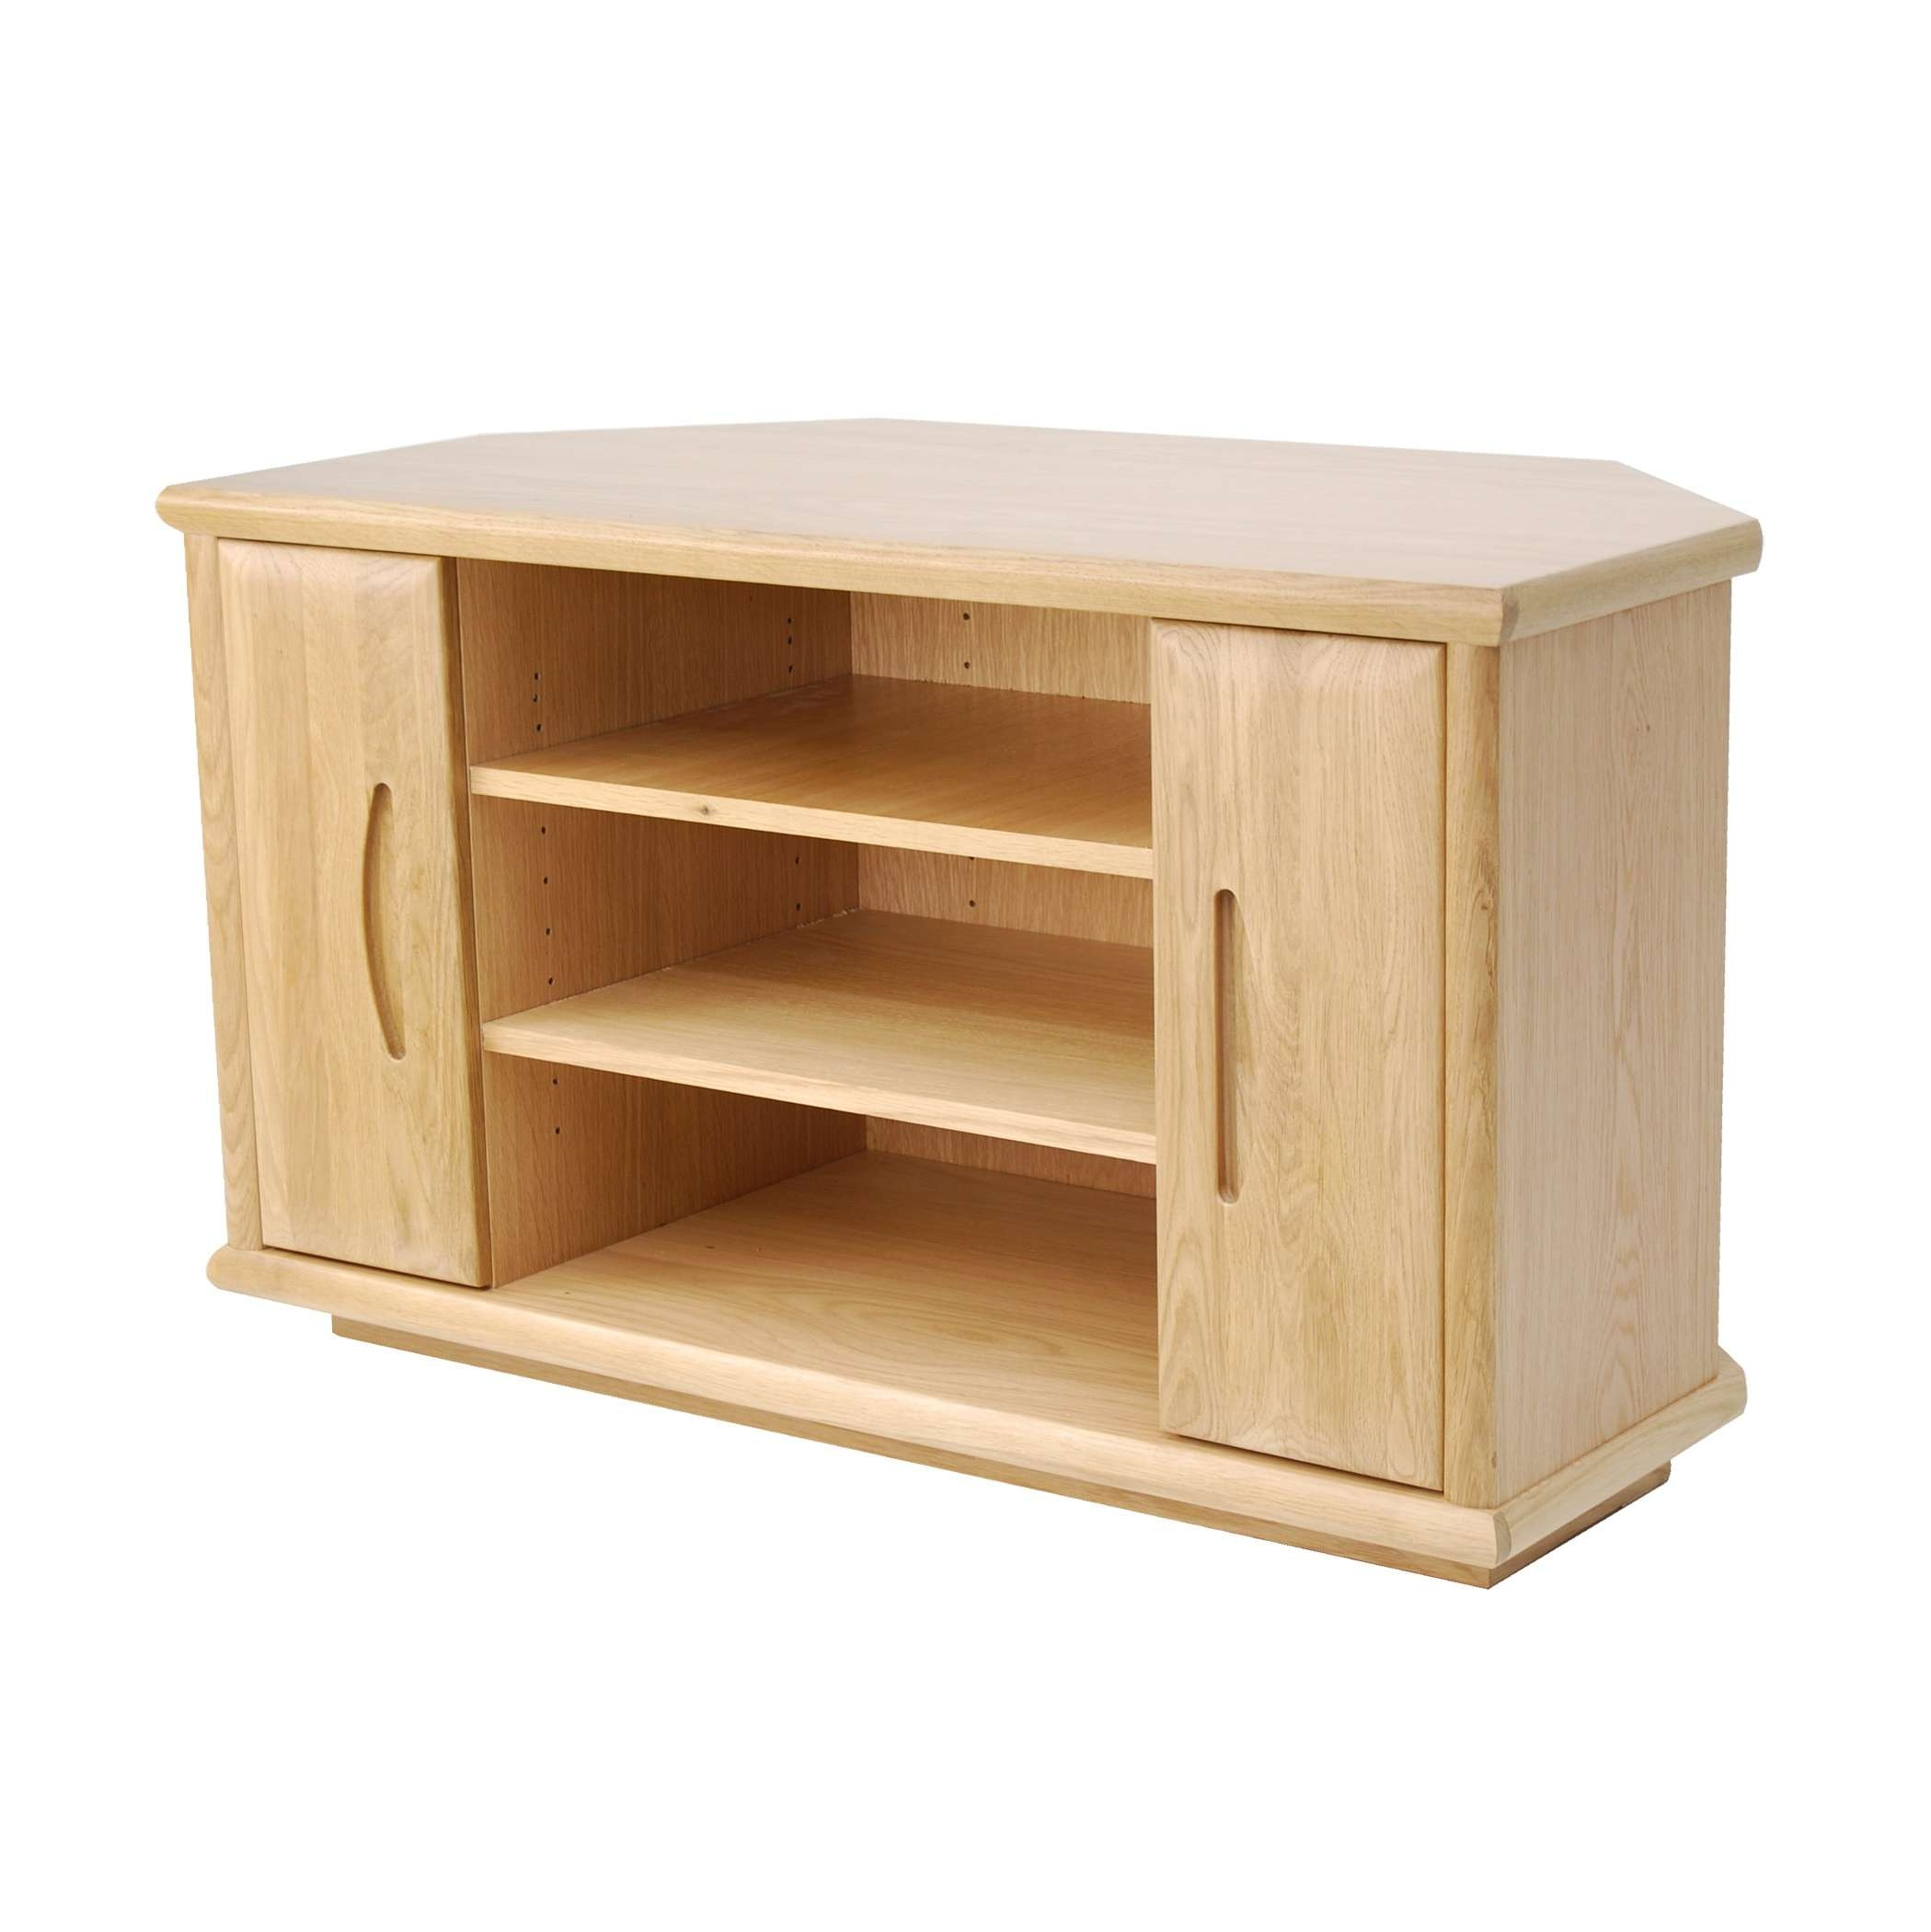 Oak Corner Tv Stand | Gola Furniture Uk Within Oak Tv Cabinets With Doors (View 8 of 20)